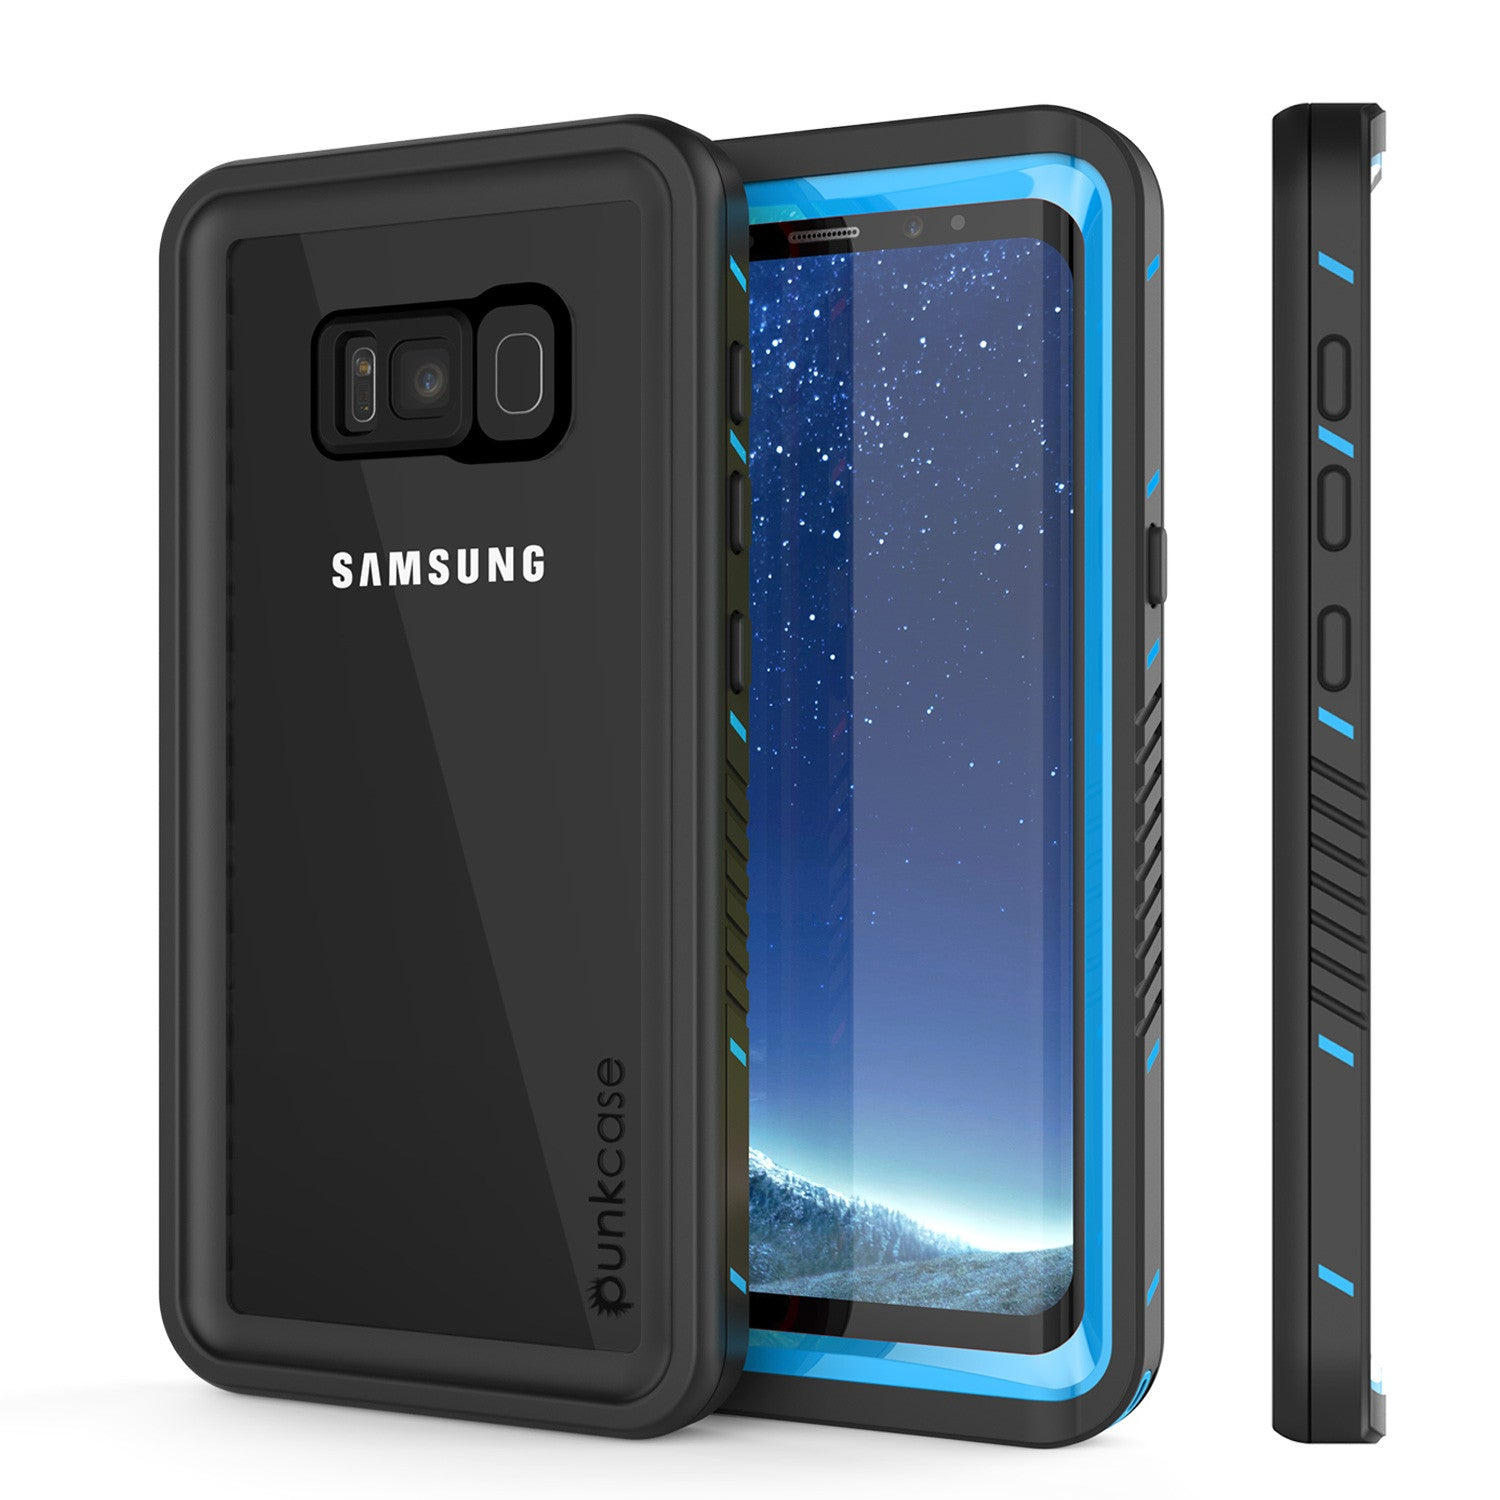 new concept 4d681 7a7a6 Galaxy S8 PLUS Waterproof Case, Punkcase [Extreme Series] [Slim Fit] [IP68  Certified] [Shockproof] [Snowproof] [Dirproof] Armor Cover [Light Blue]